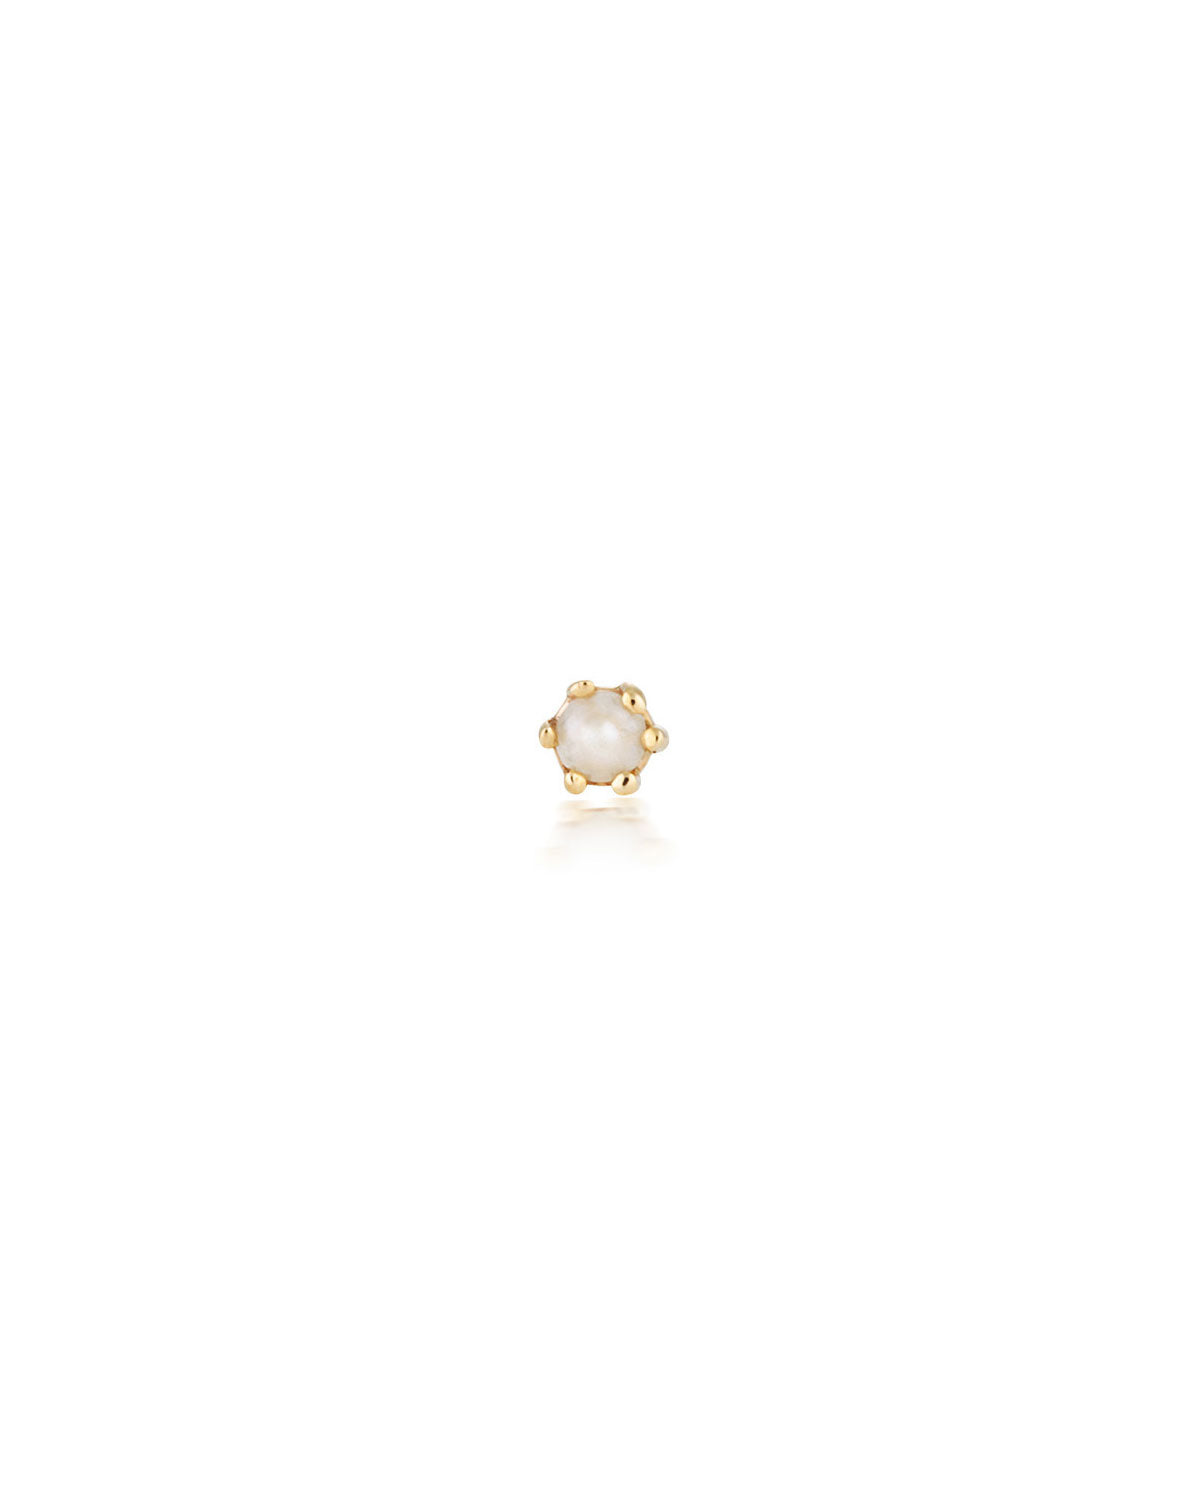 (Single) Pearl Droplet Stud Earring | 9k Gold